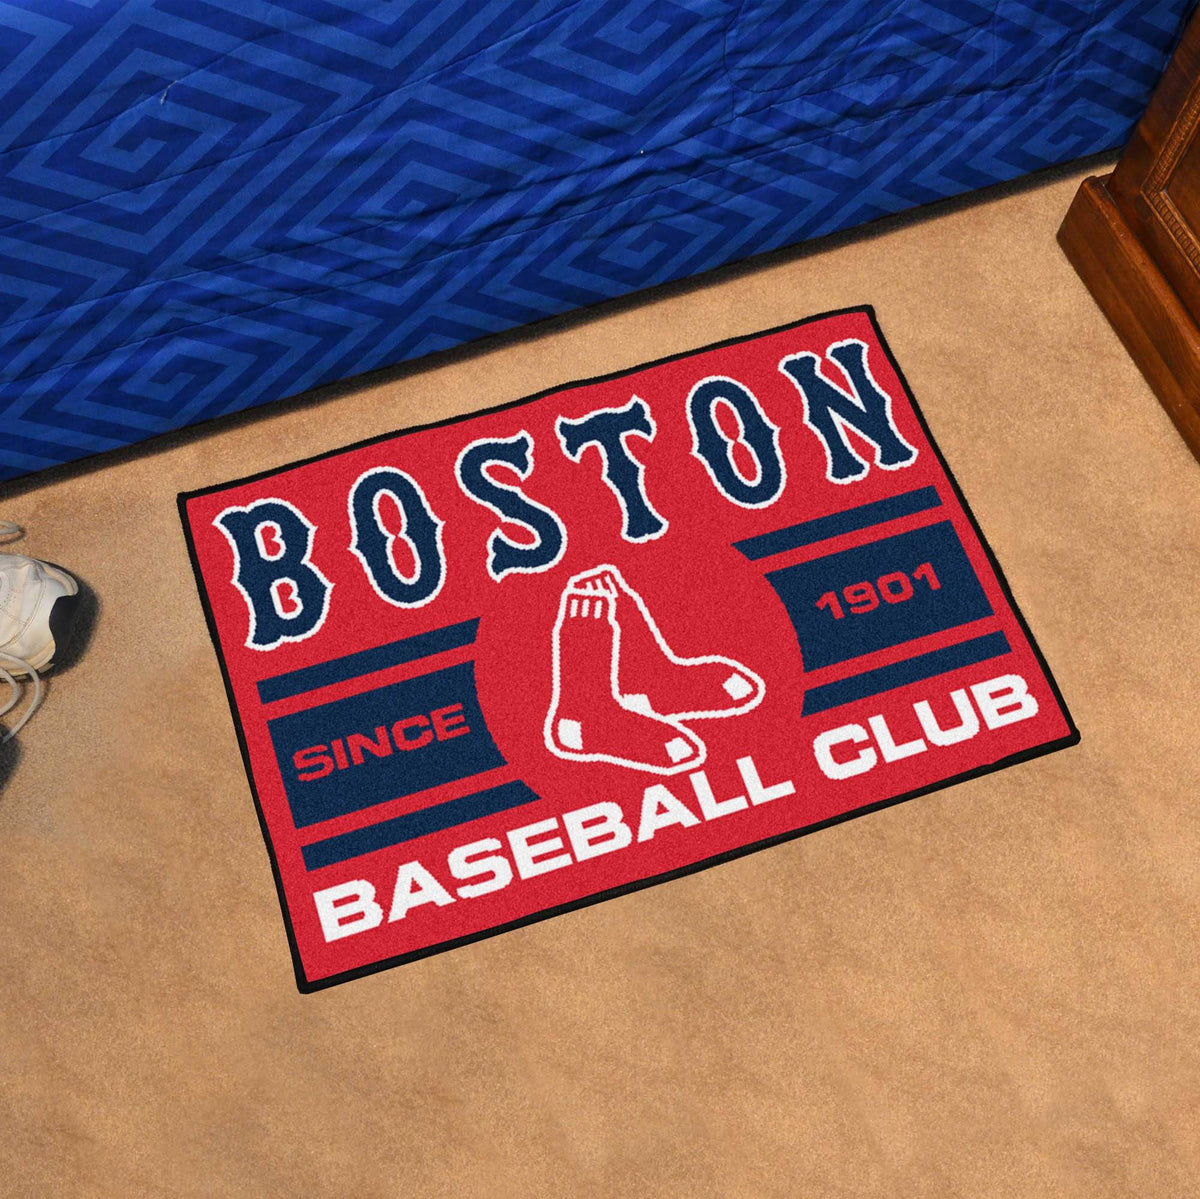 MLB - Uniform Starter Mat MLB Mats, Rectangular Mats, Uniform Starter Mat, MLB, Home Fan Mats Boston Red Sox